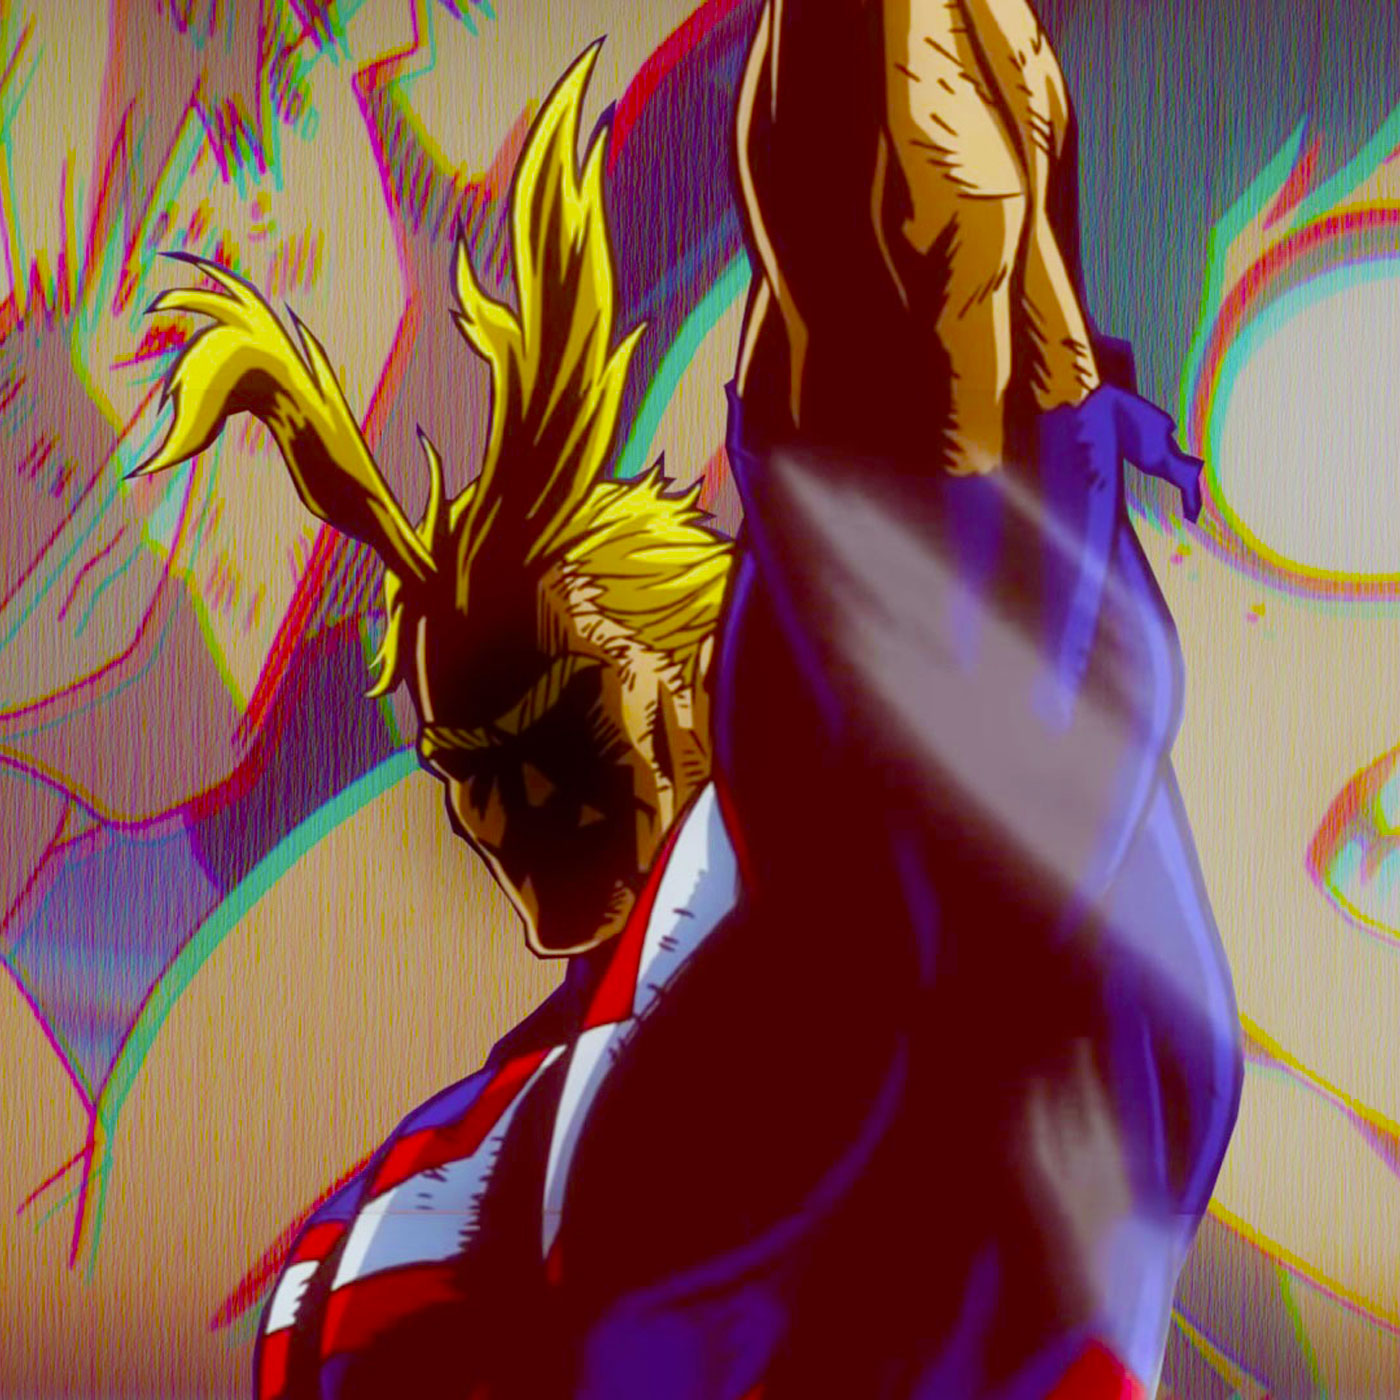 Akira The Don & Joseph Cambell - AND THEY WERE ONE | My Hero Academia AMV | Meaningwave